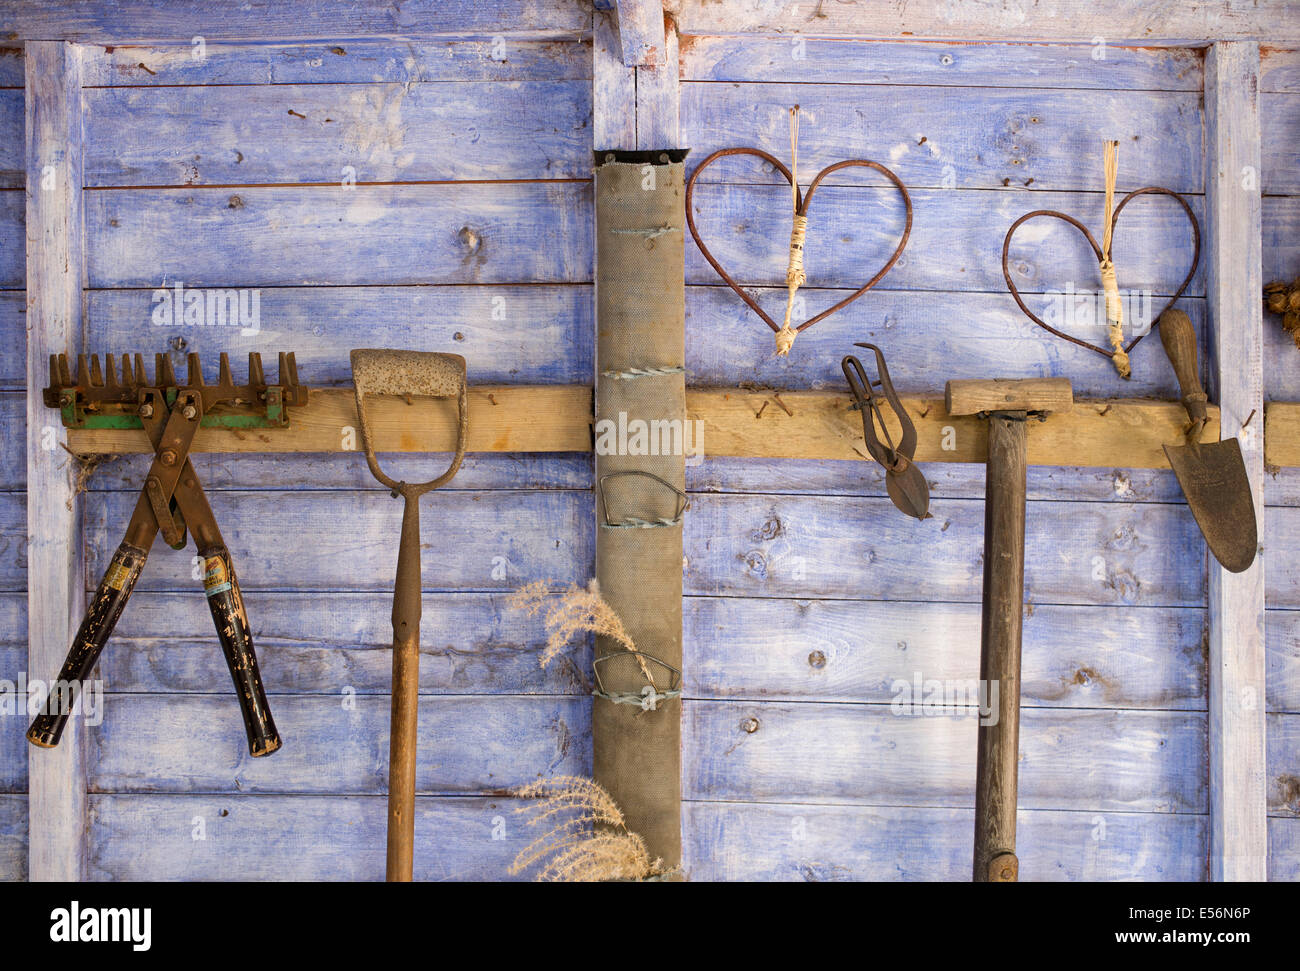 Stick heart shapes and old garden tools inside the for Gardening tools for 6 year old